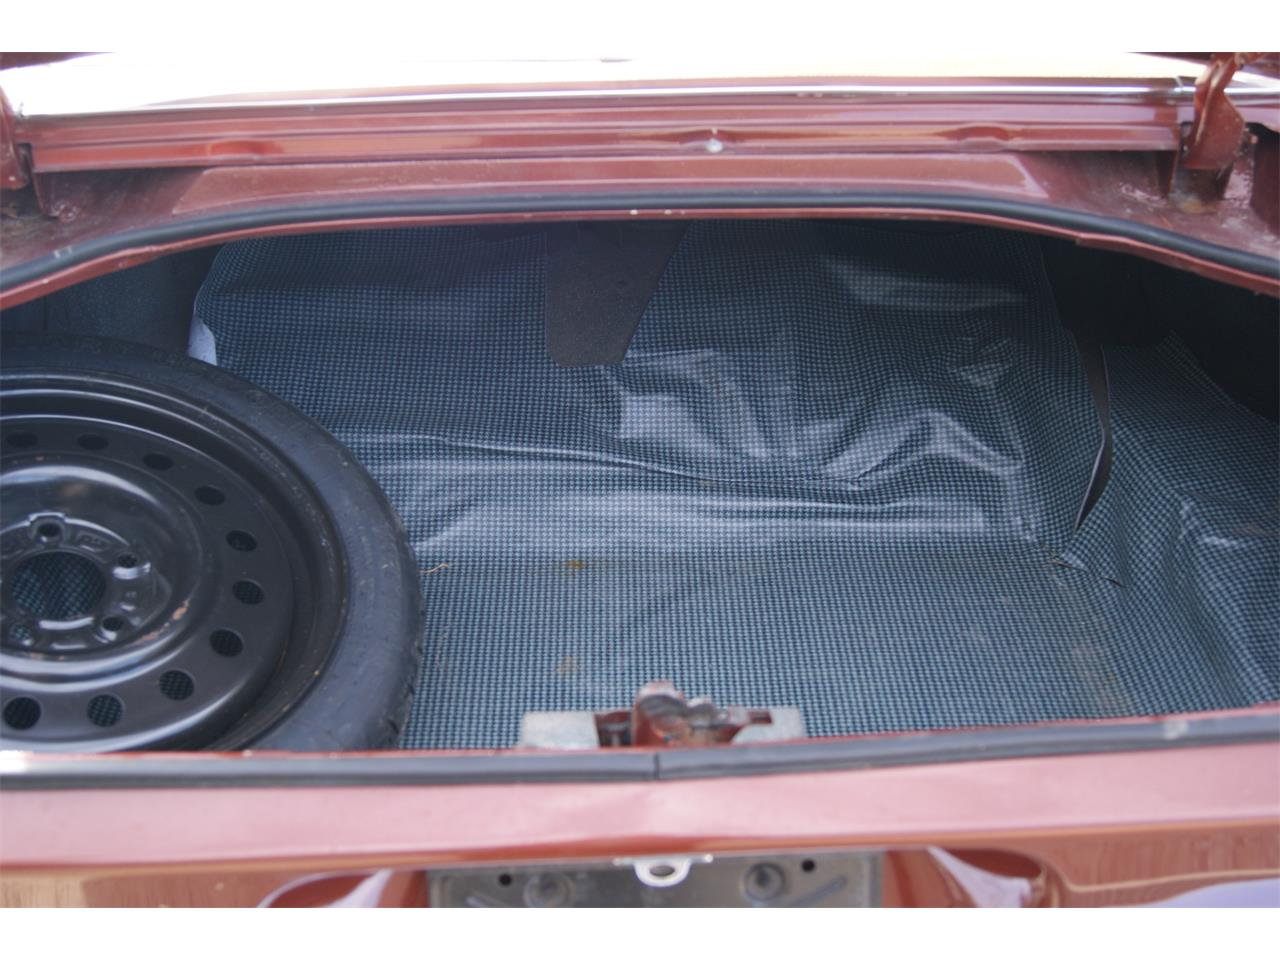 Large Picture of 1971 Camaro RS located in Texas - $34,900.00 Offered by a Private Seller - D749